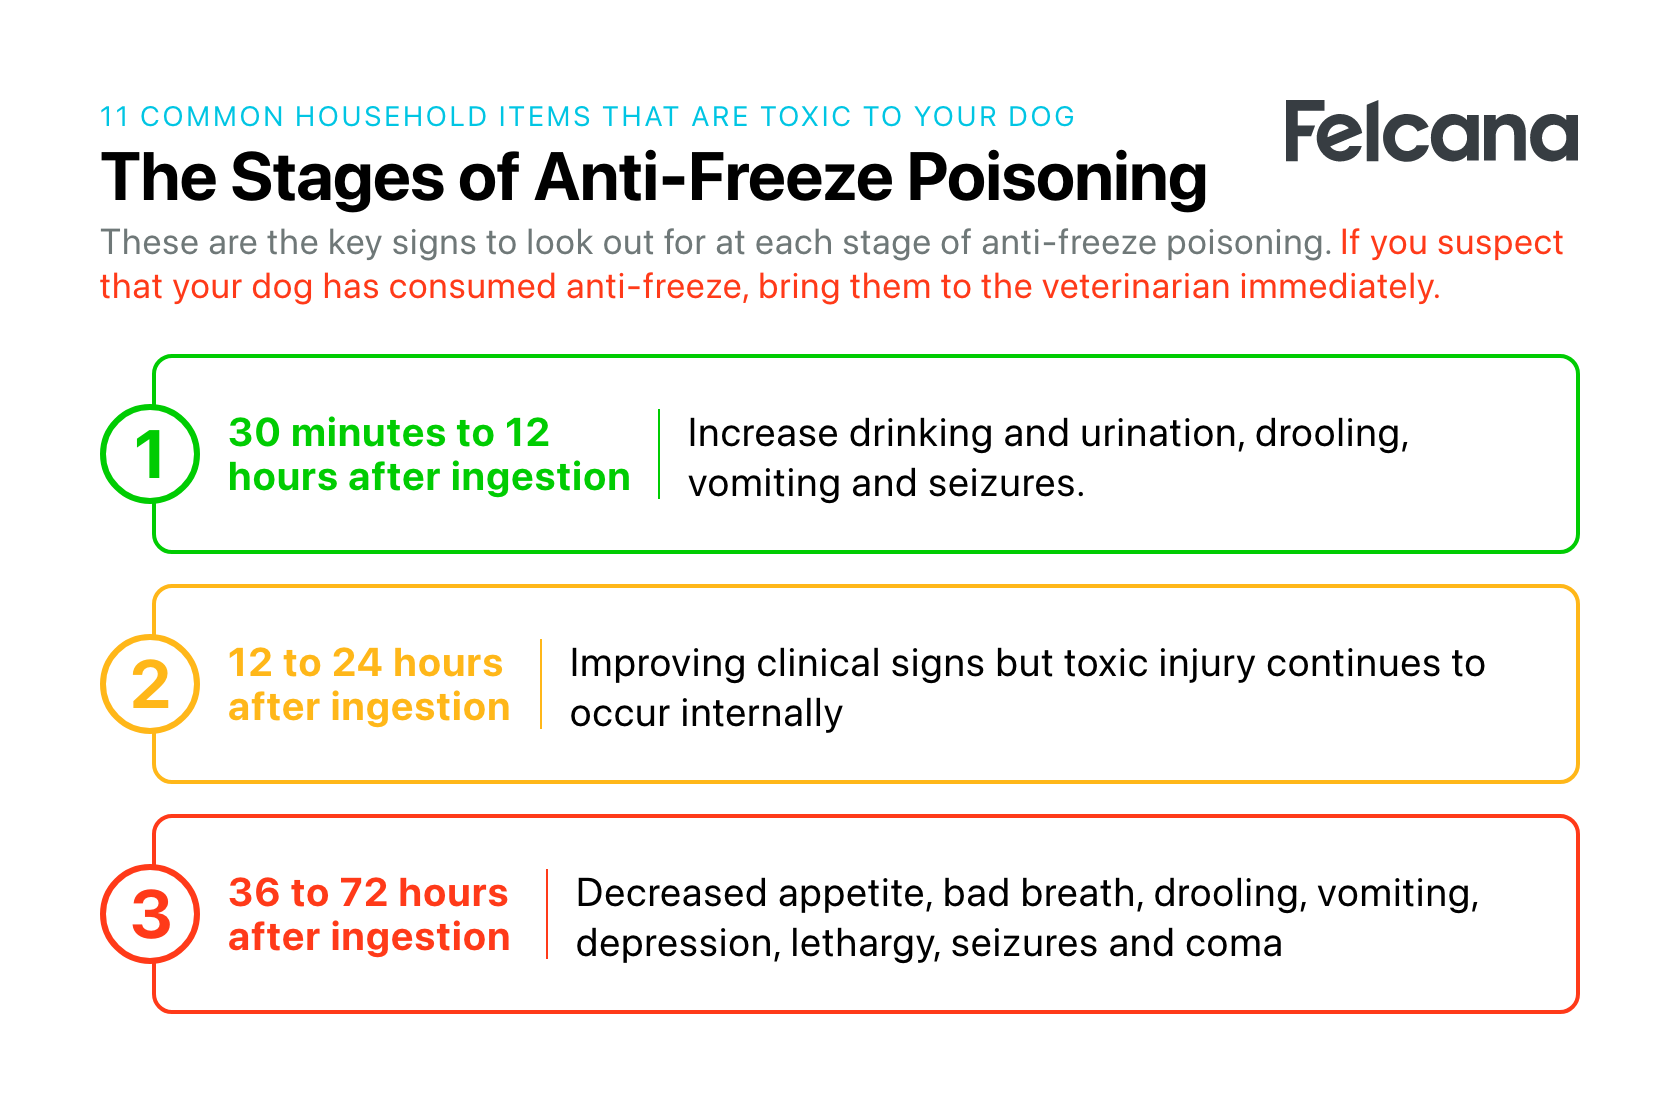 Summary of the three stages of anti-freeze poisoning in dogs and signs to look out for